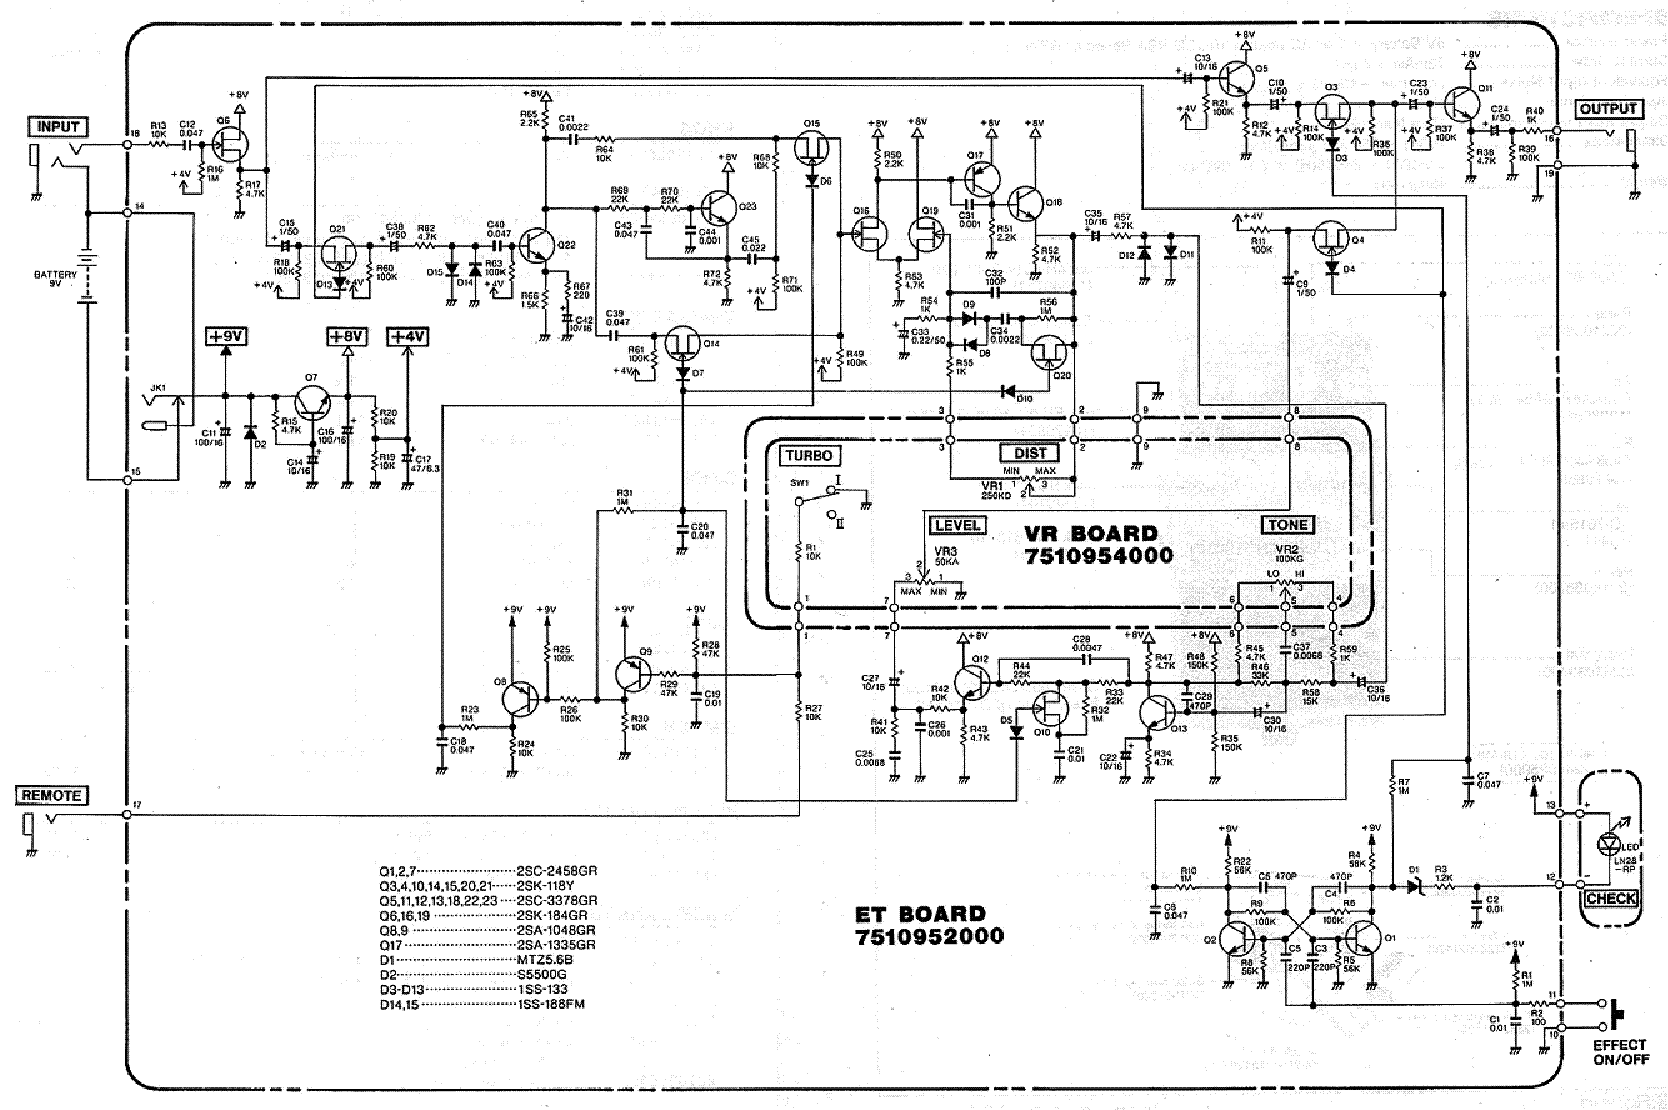 BOSS TURBO-DISTORTION-DS2 Service Manual download, schematics ... on boss lm-2 schematic, boss ce-3 schematic, boss od-2 schematic, boss ds 1 modification, boss ds 1 keeley mod, boss sd1 schematic, boss oc-2 schematic, boss sp1, boss ge-7 schematic, boss dm-2 schematic, boss overdrive schematic, boss hm-2 schematic, boss od-1 mod instruction, boss fs 6 footswitch schematic, boss metal zone, boss ph-1 schematic, boss ls 2 schematic, boss mt 2 schematic, boss blues driver schematic, boss ce-2 schematic,